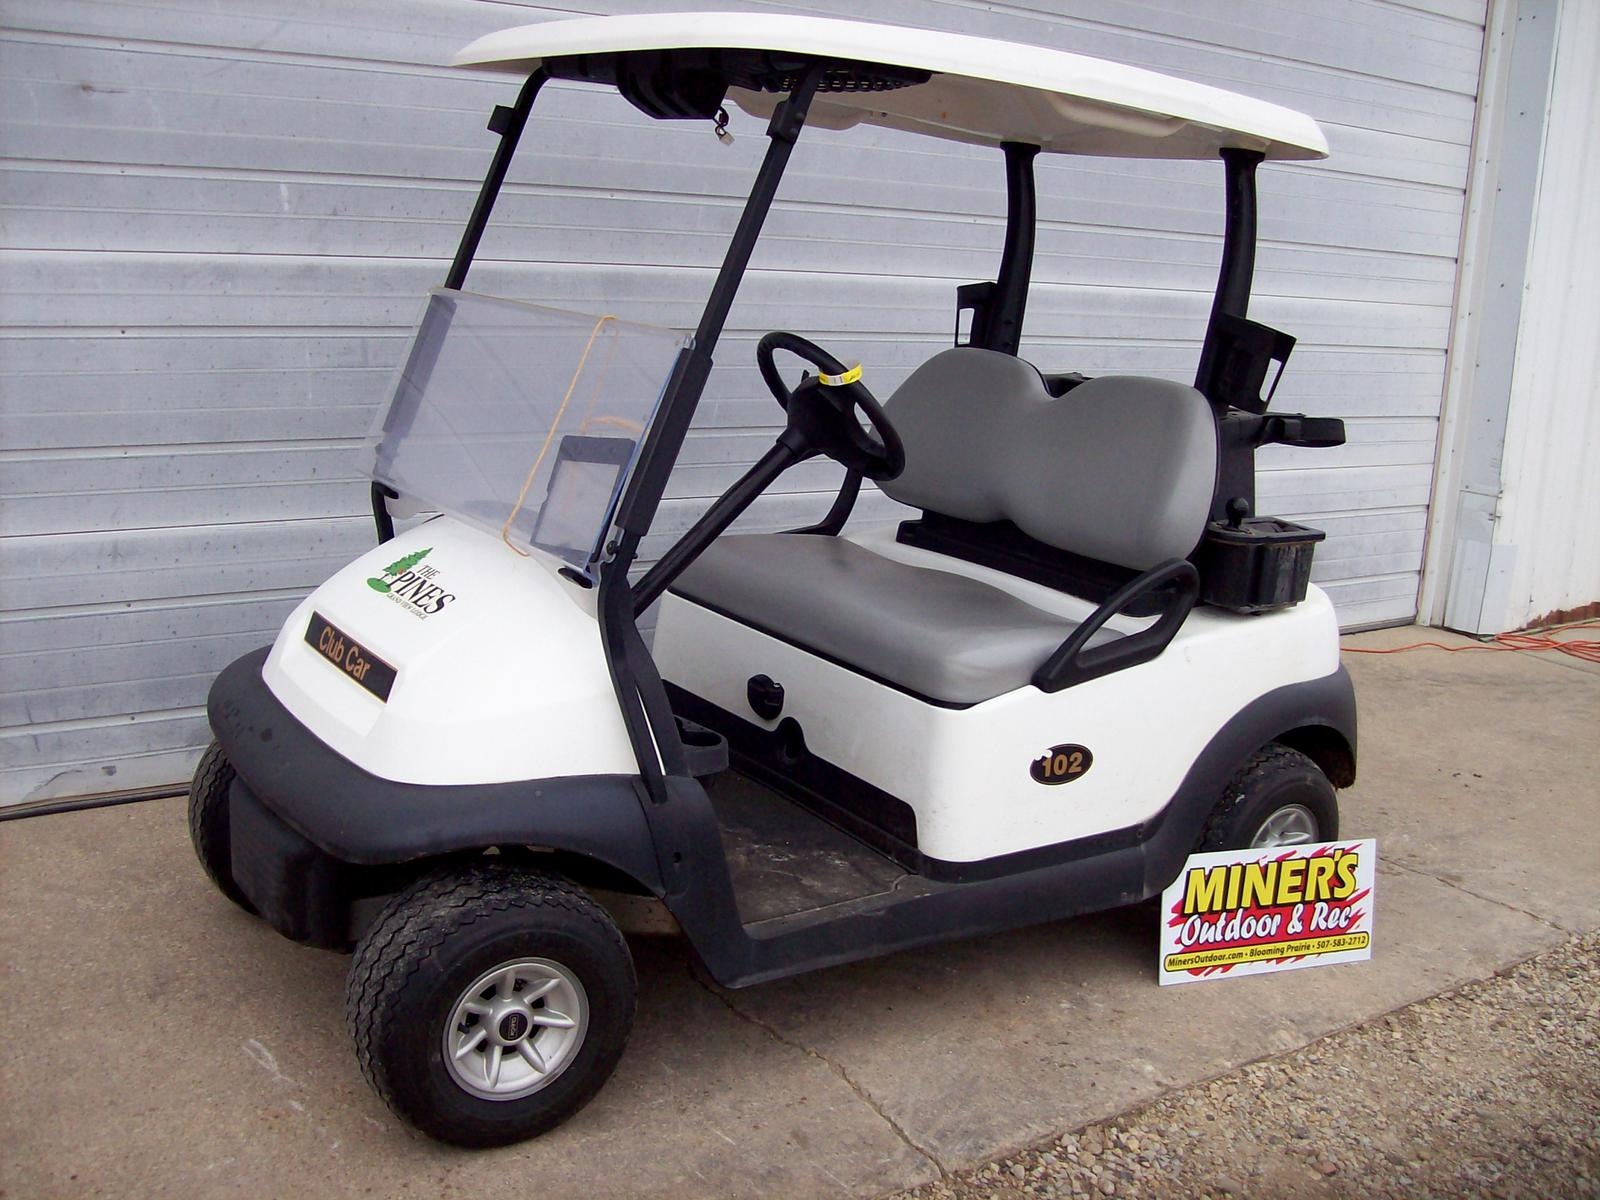 Golf Carts from Club Car Miner's Outdoor & Rec Blooming